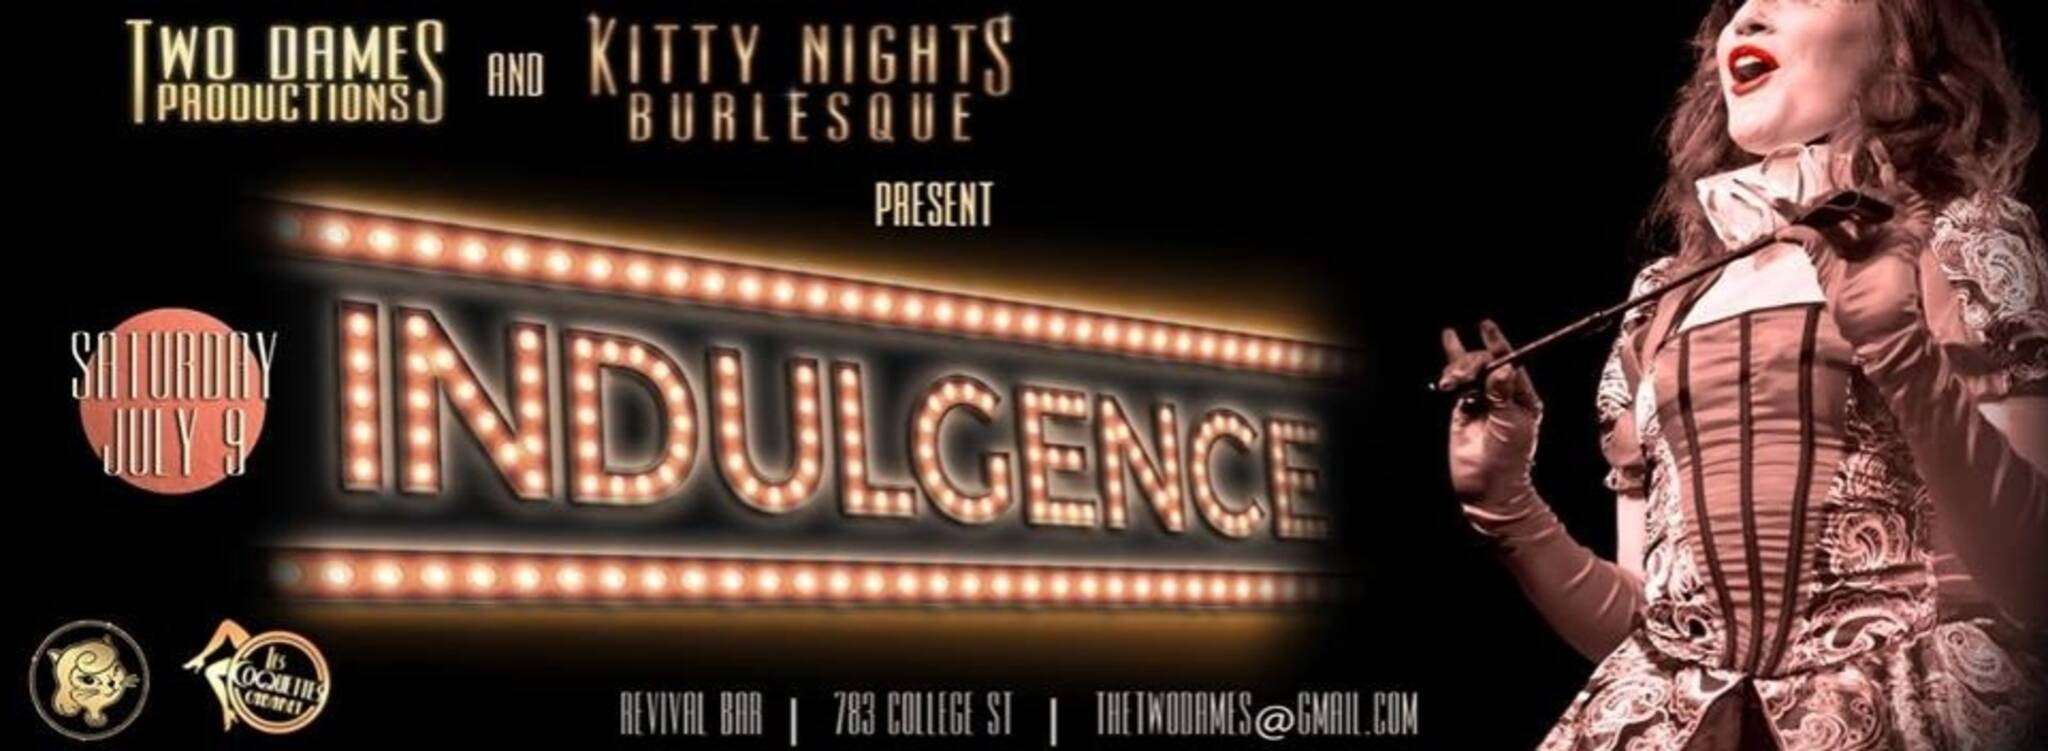 Kitty Nights Burlesque Toronto Indulgence Feat Les Coquettes